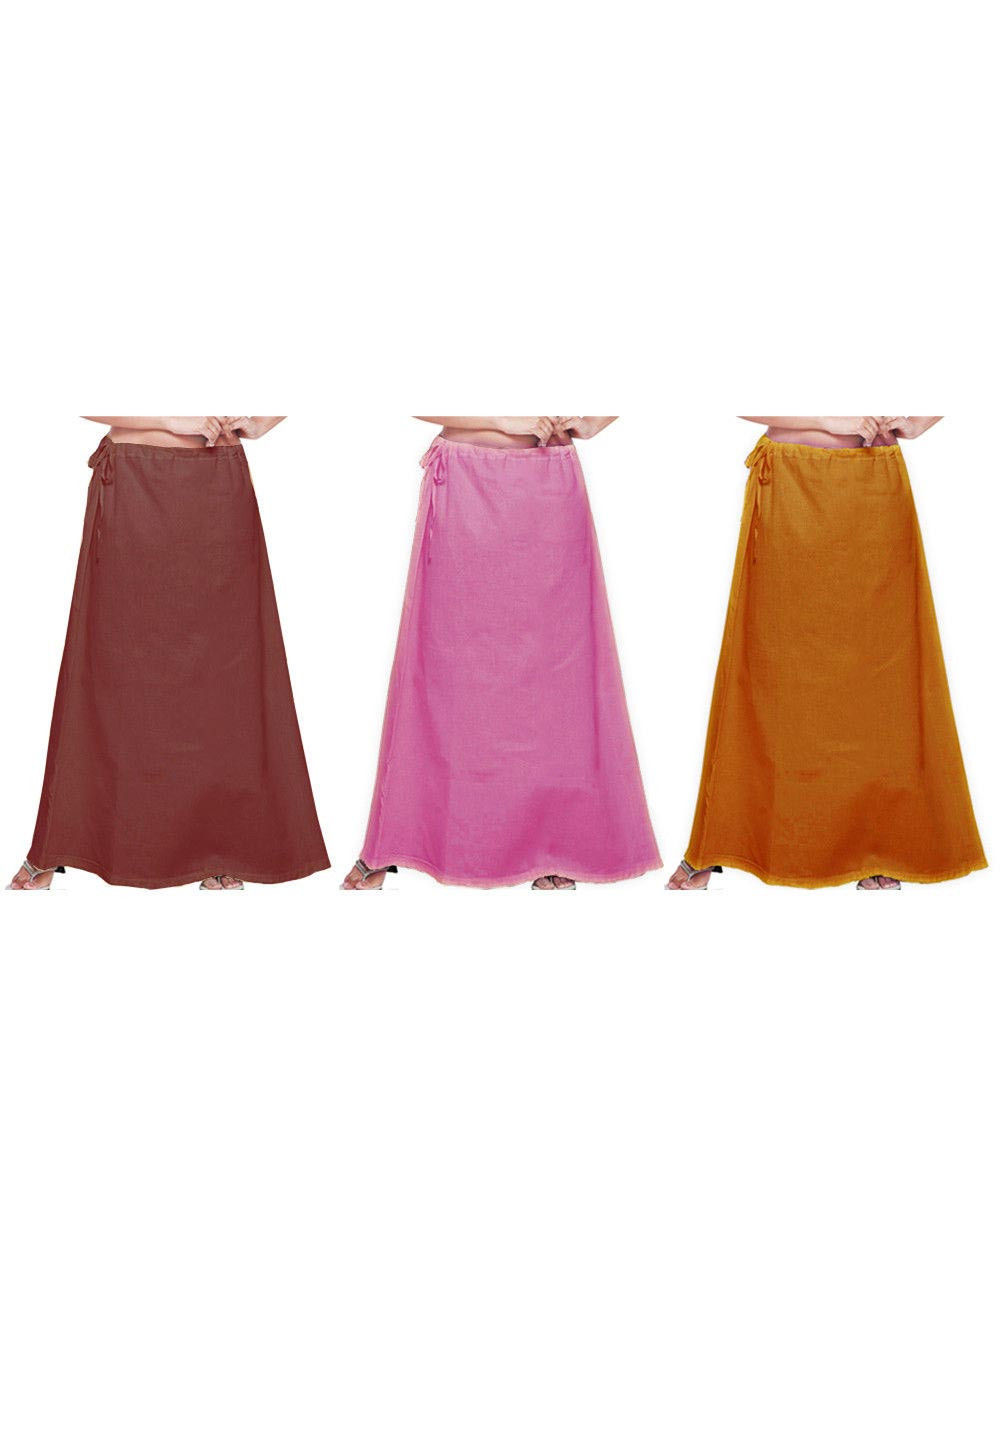 Combo Set Cotton Petticoat in Brown, Pink and Mustard